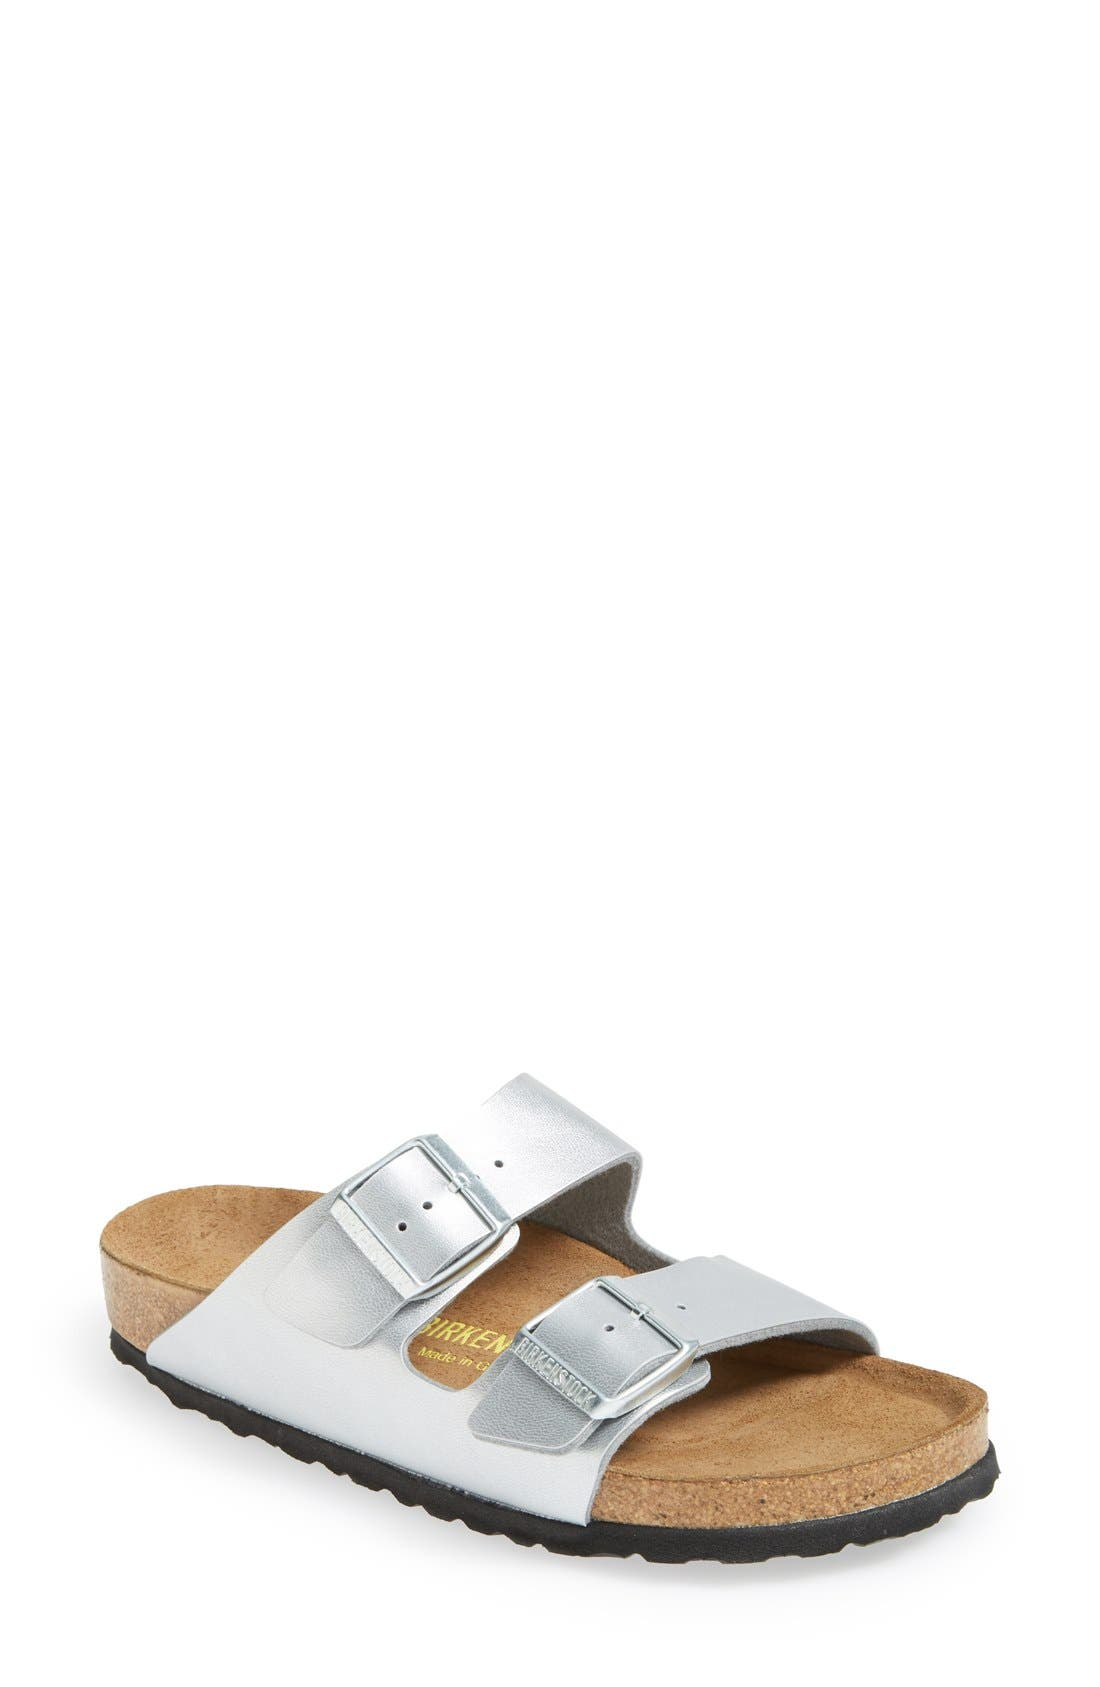 'Arizona Birko-Flor' Soft Footbed Sandal,                         Main,                         color,